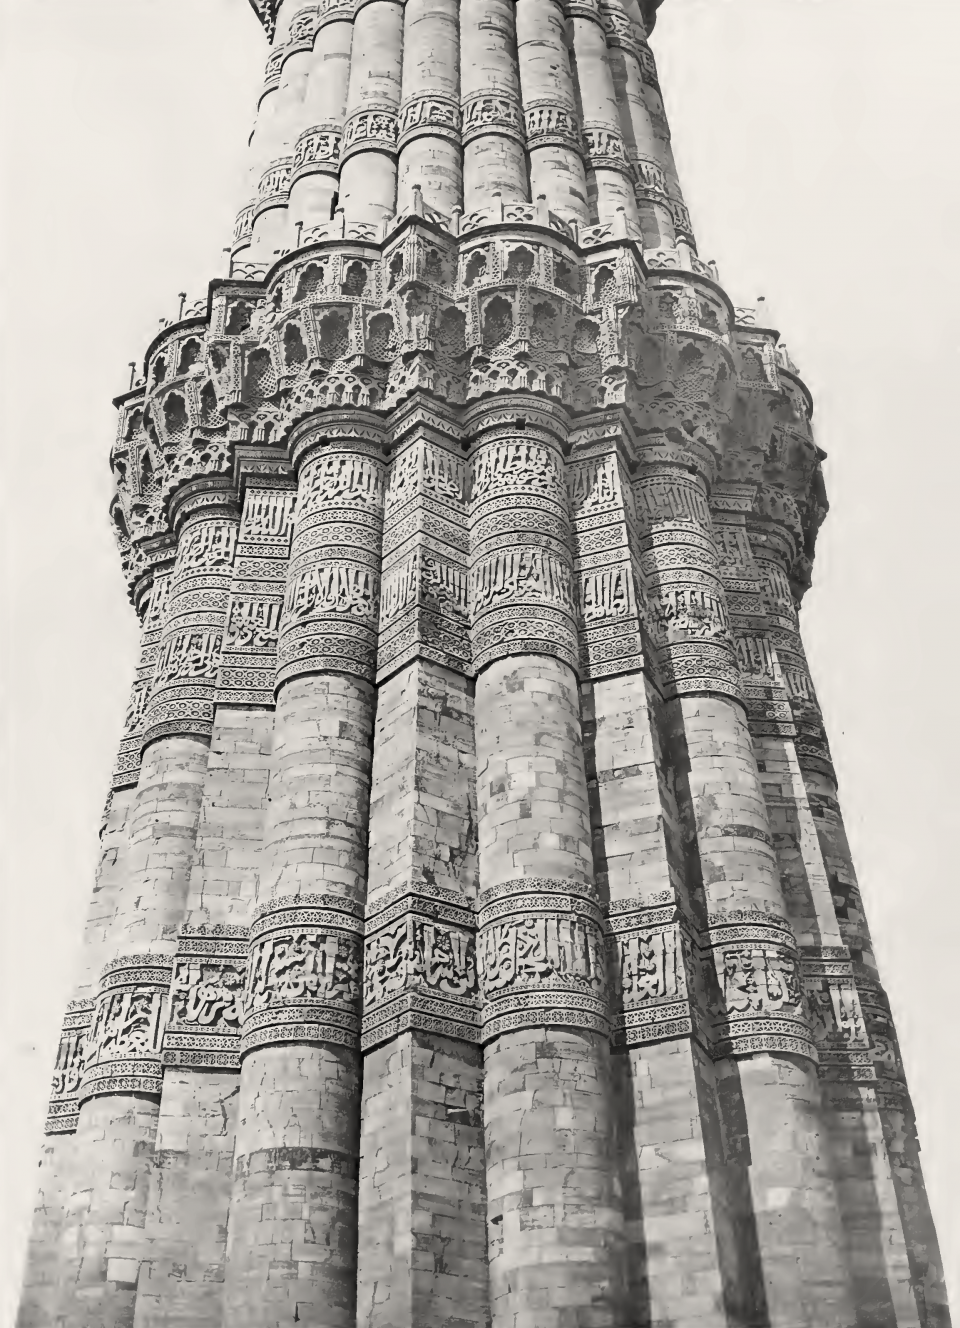 The Kutb Minar. First Gallery of the Minar